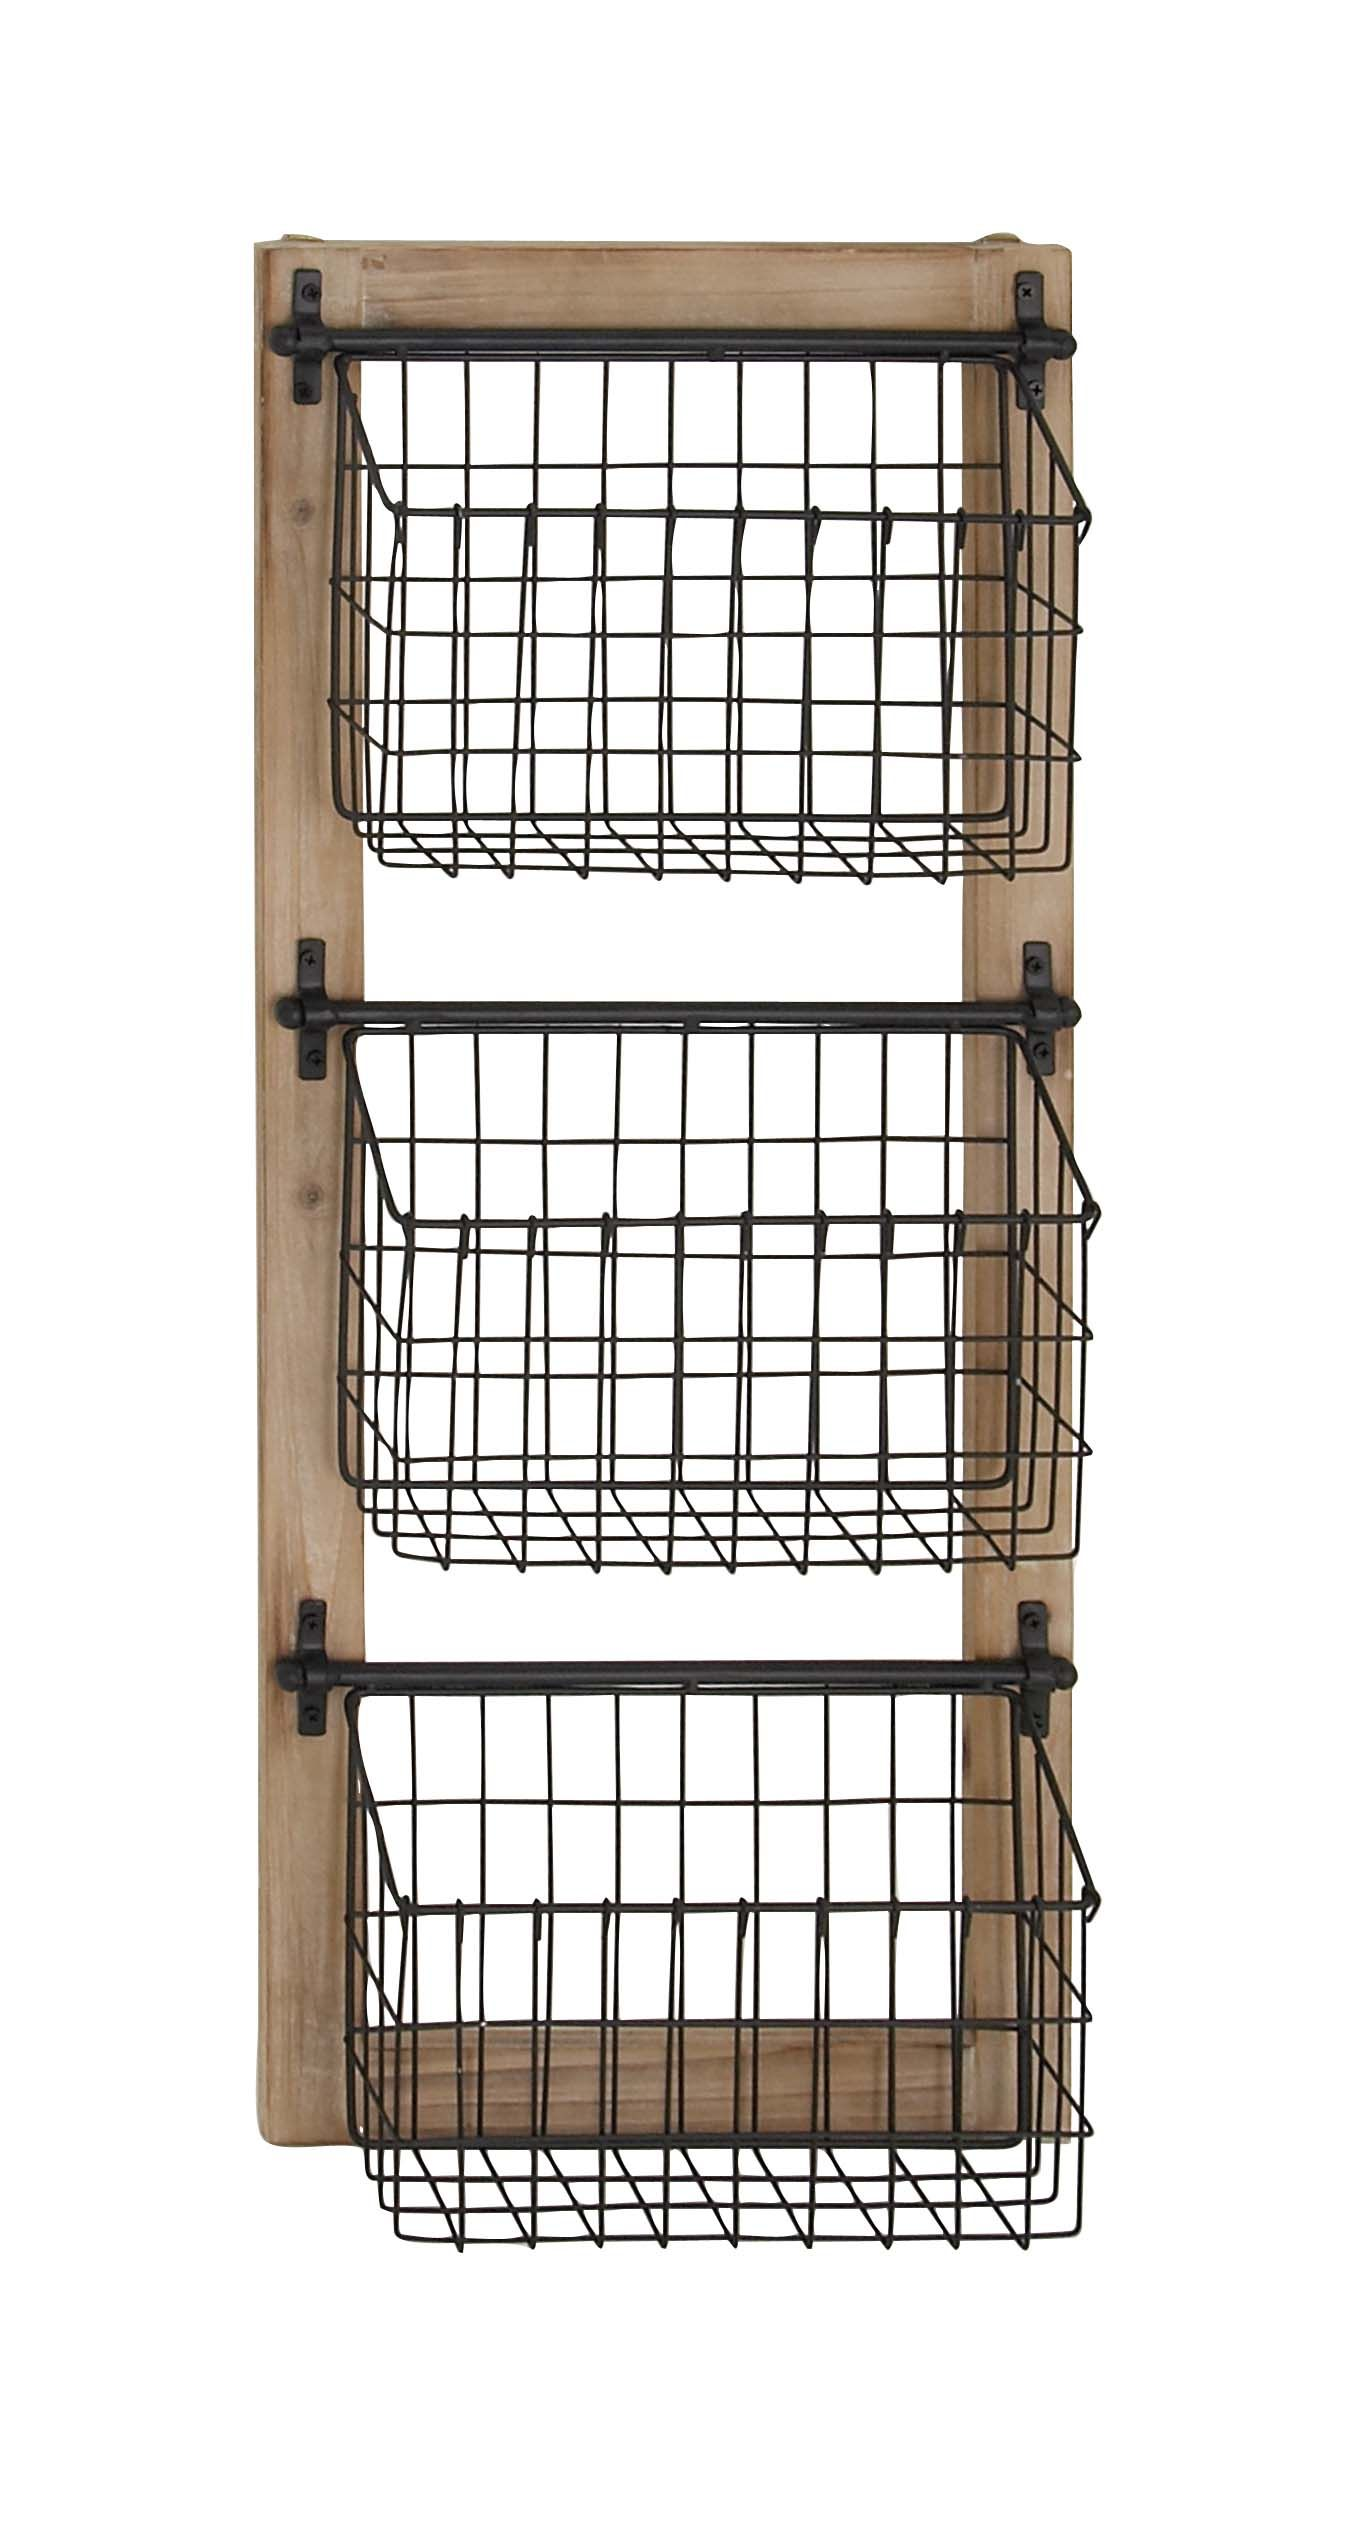 Decmode Industrial Wood And Iron 3 Tier Basket Wall Rack Black Walmart Com Baskets On Wall Home Decor Kitchen Vegetable Storage